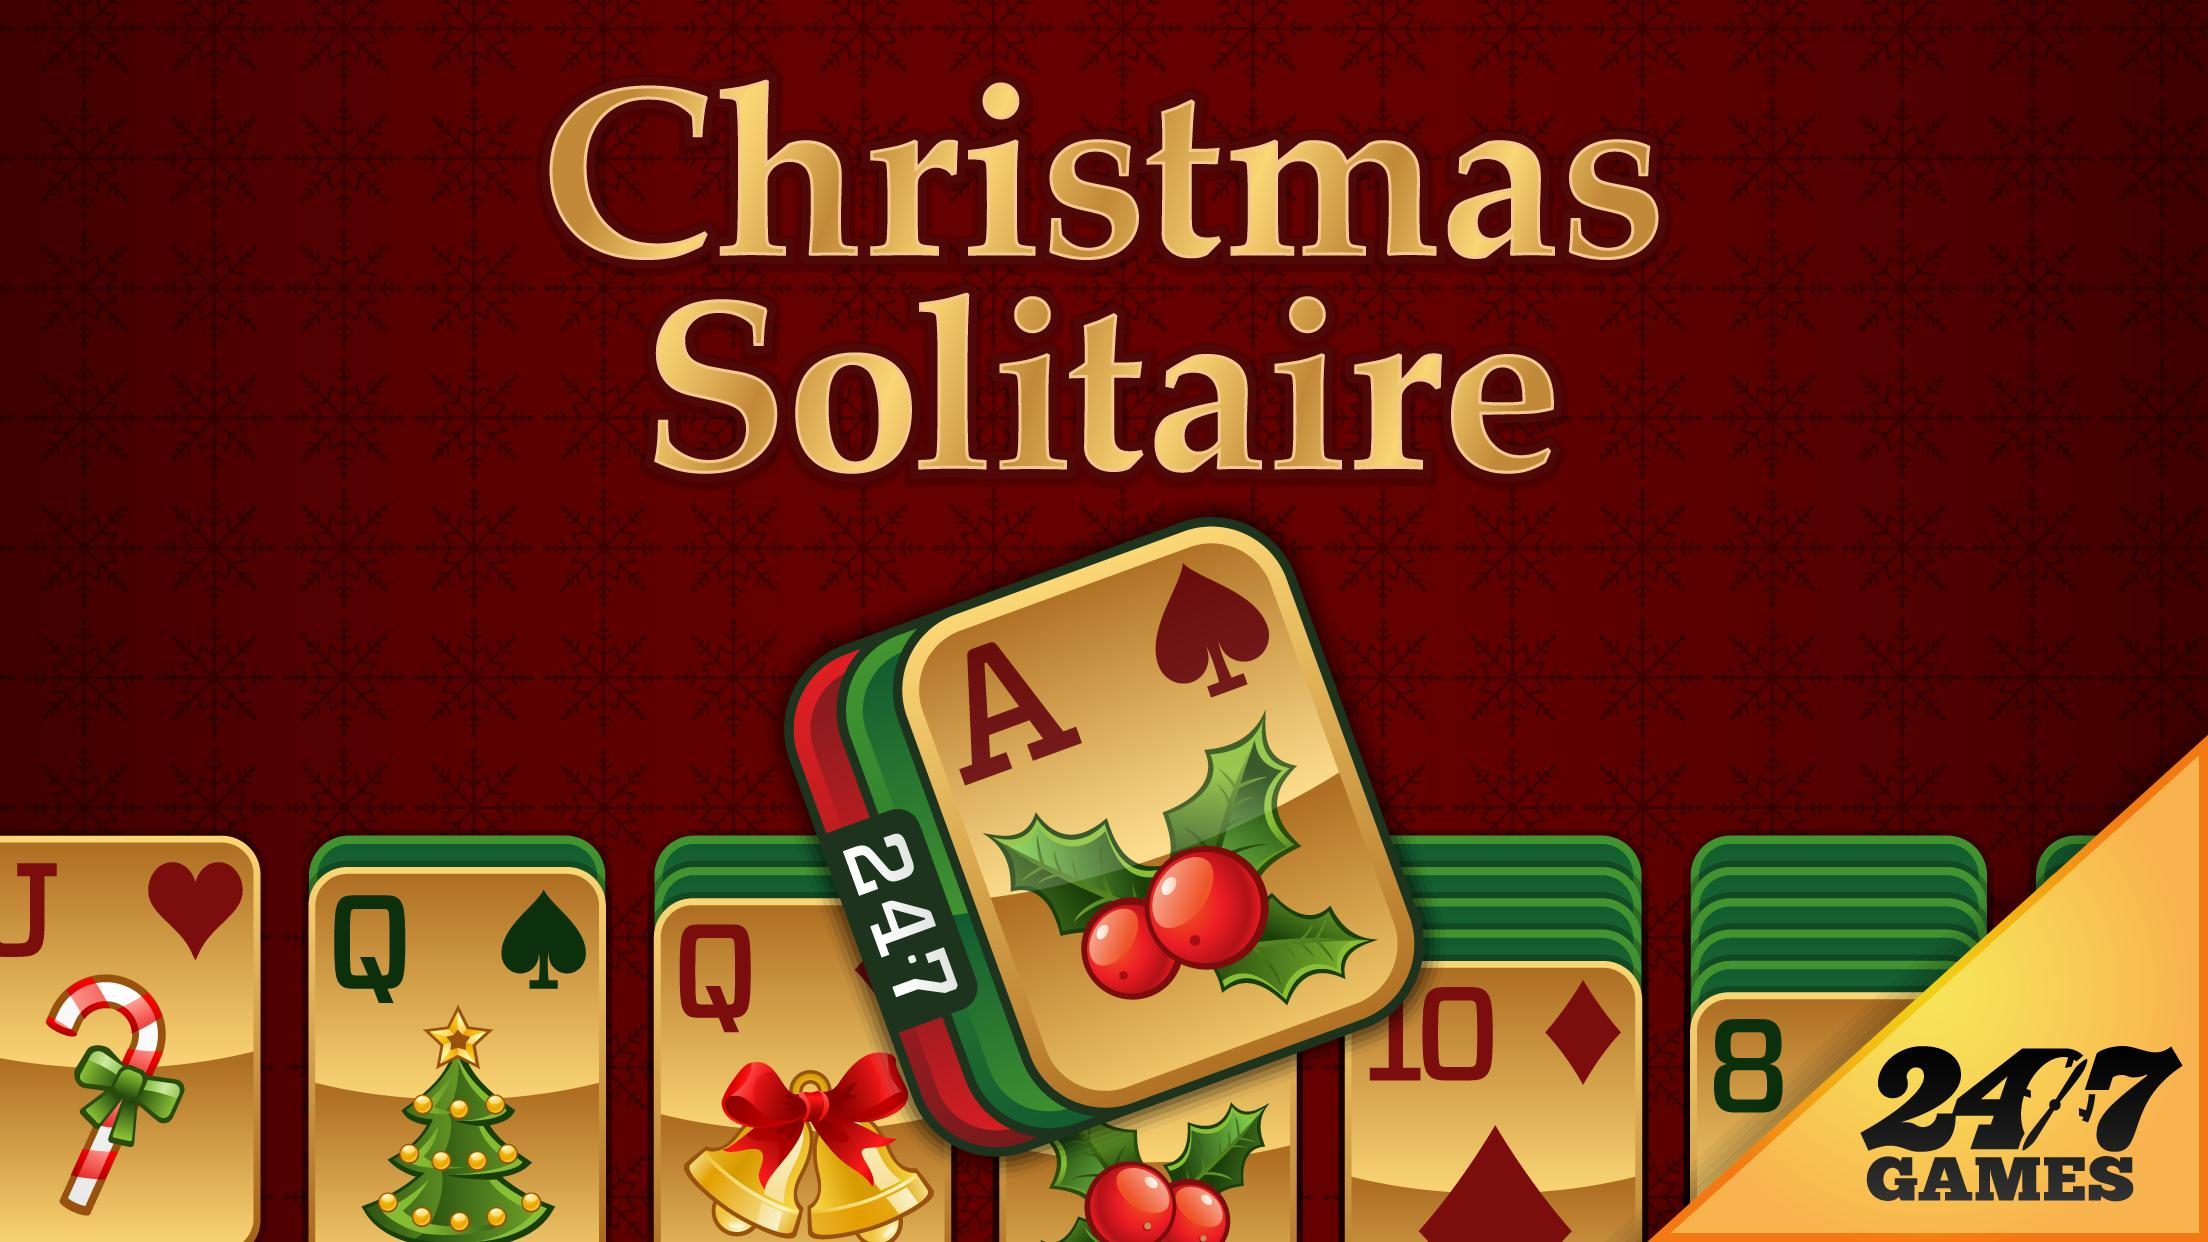 Christmas Solitaire.Christmas Solitaire For Android Apk Download